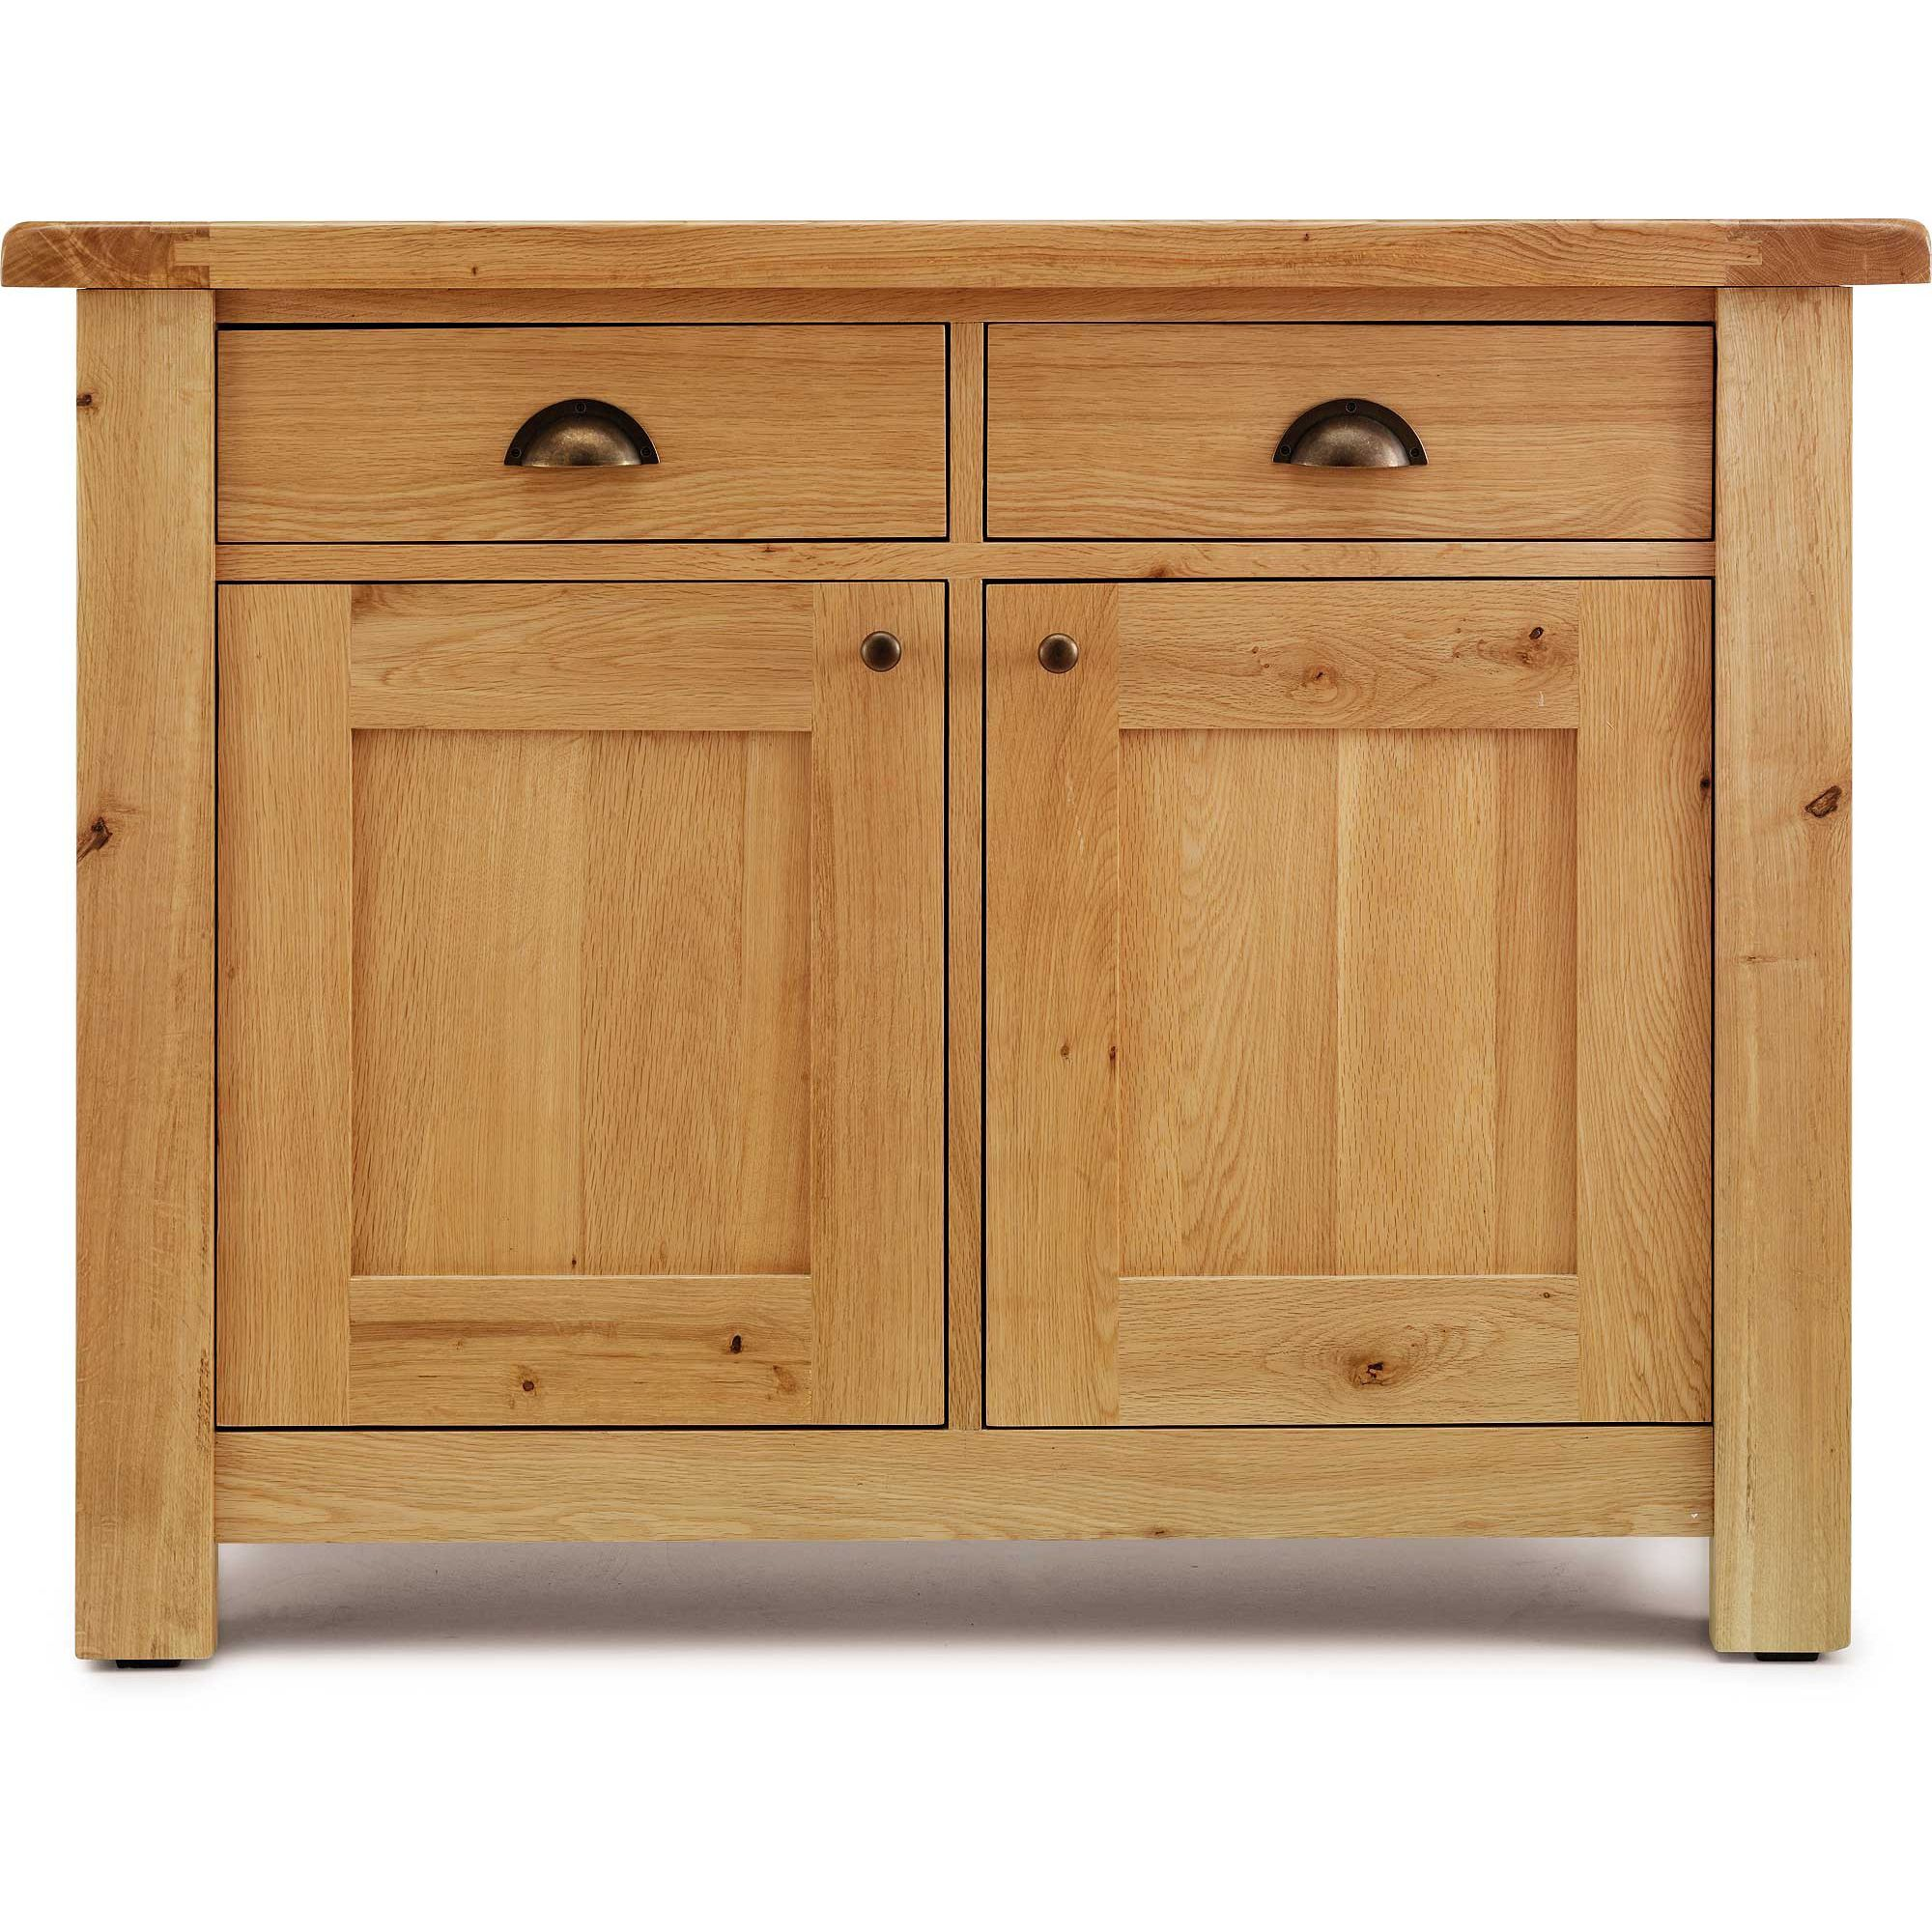 Originals Normandy Small Sideboard at Tesco Direct